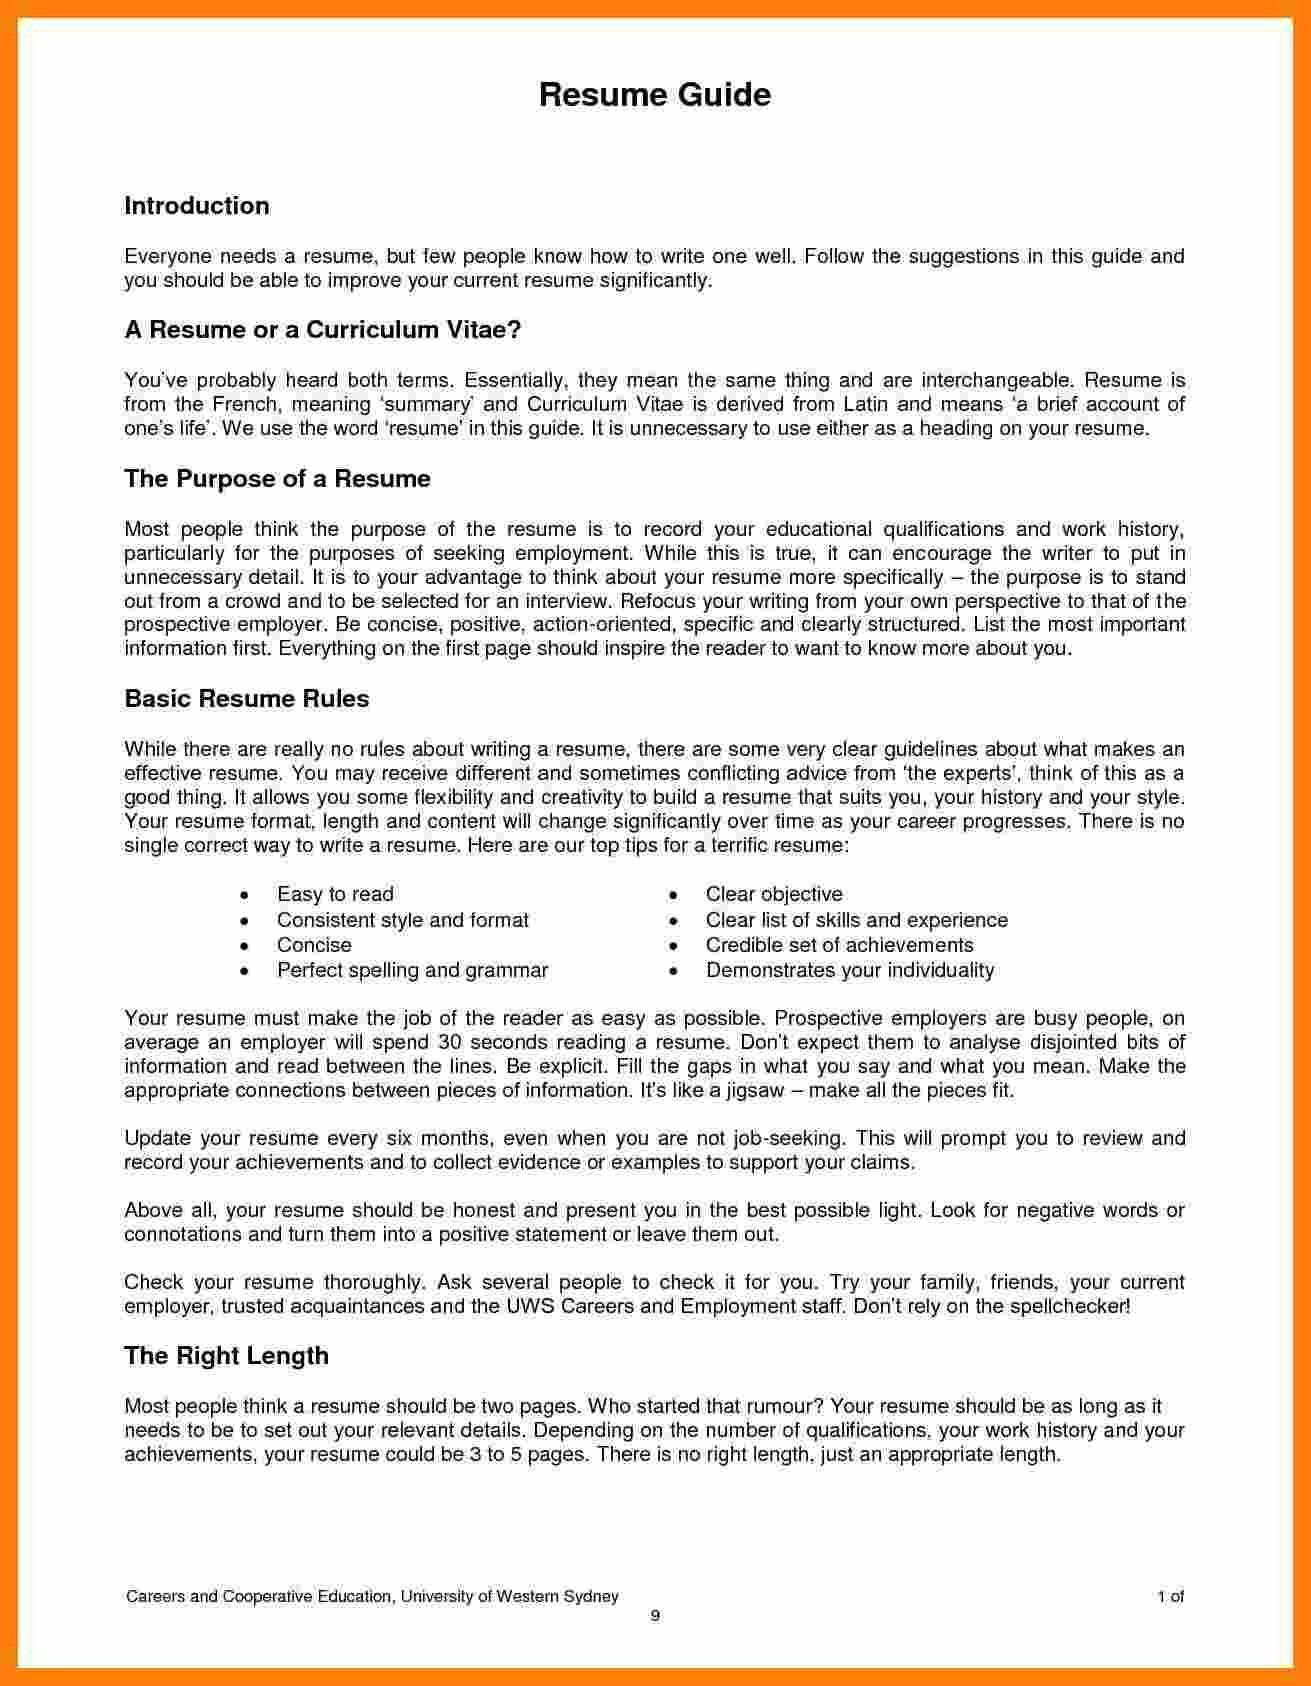 usajobs resume template example-Government Resume Examples Lovely Unique Federal Government Resume Template Best Bsw Resume 0d Government Resume 4-n